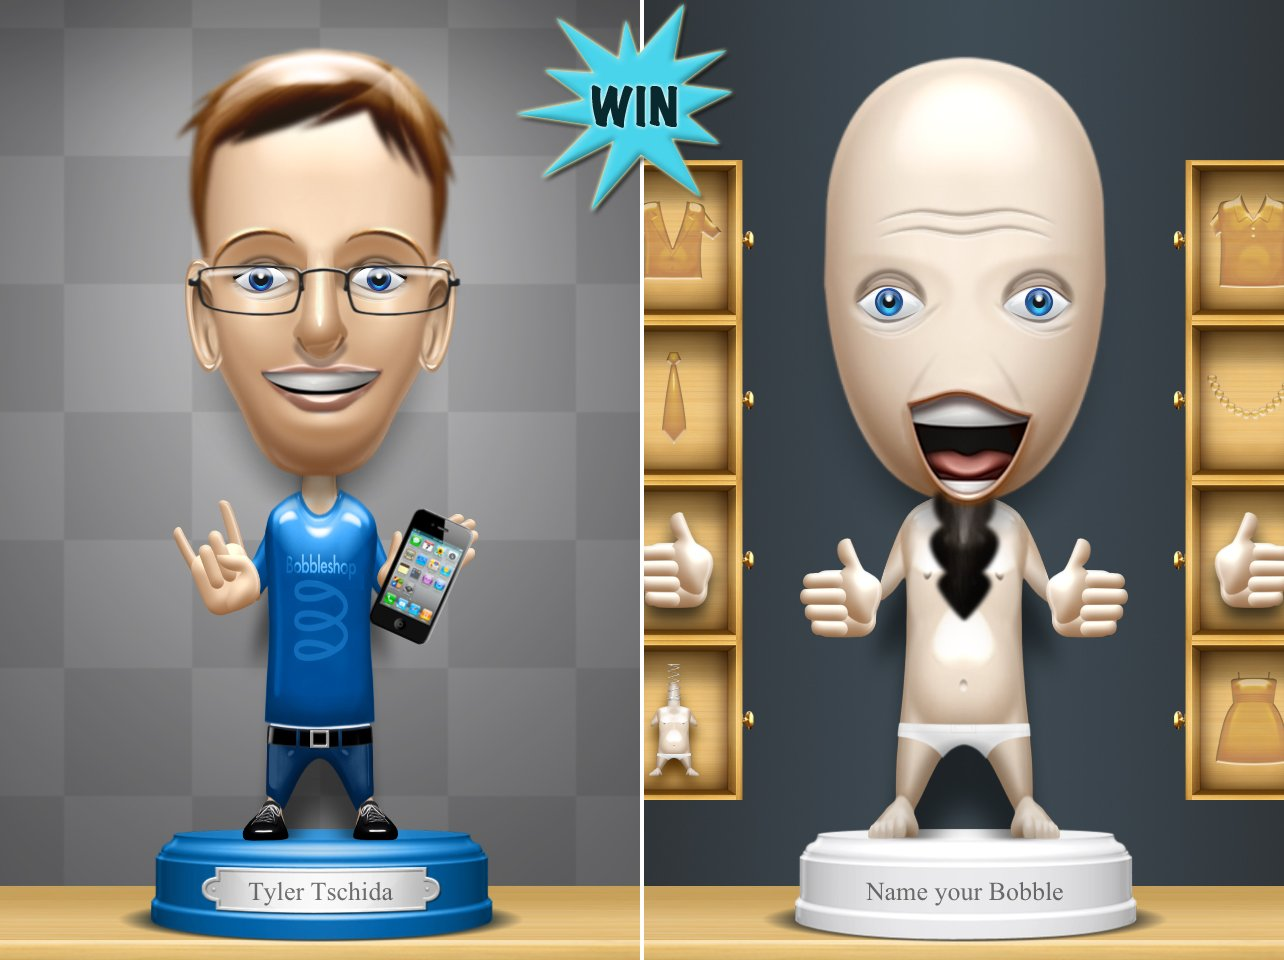 A Chance To Win Bobbleshop For iPhone And iPad